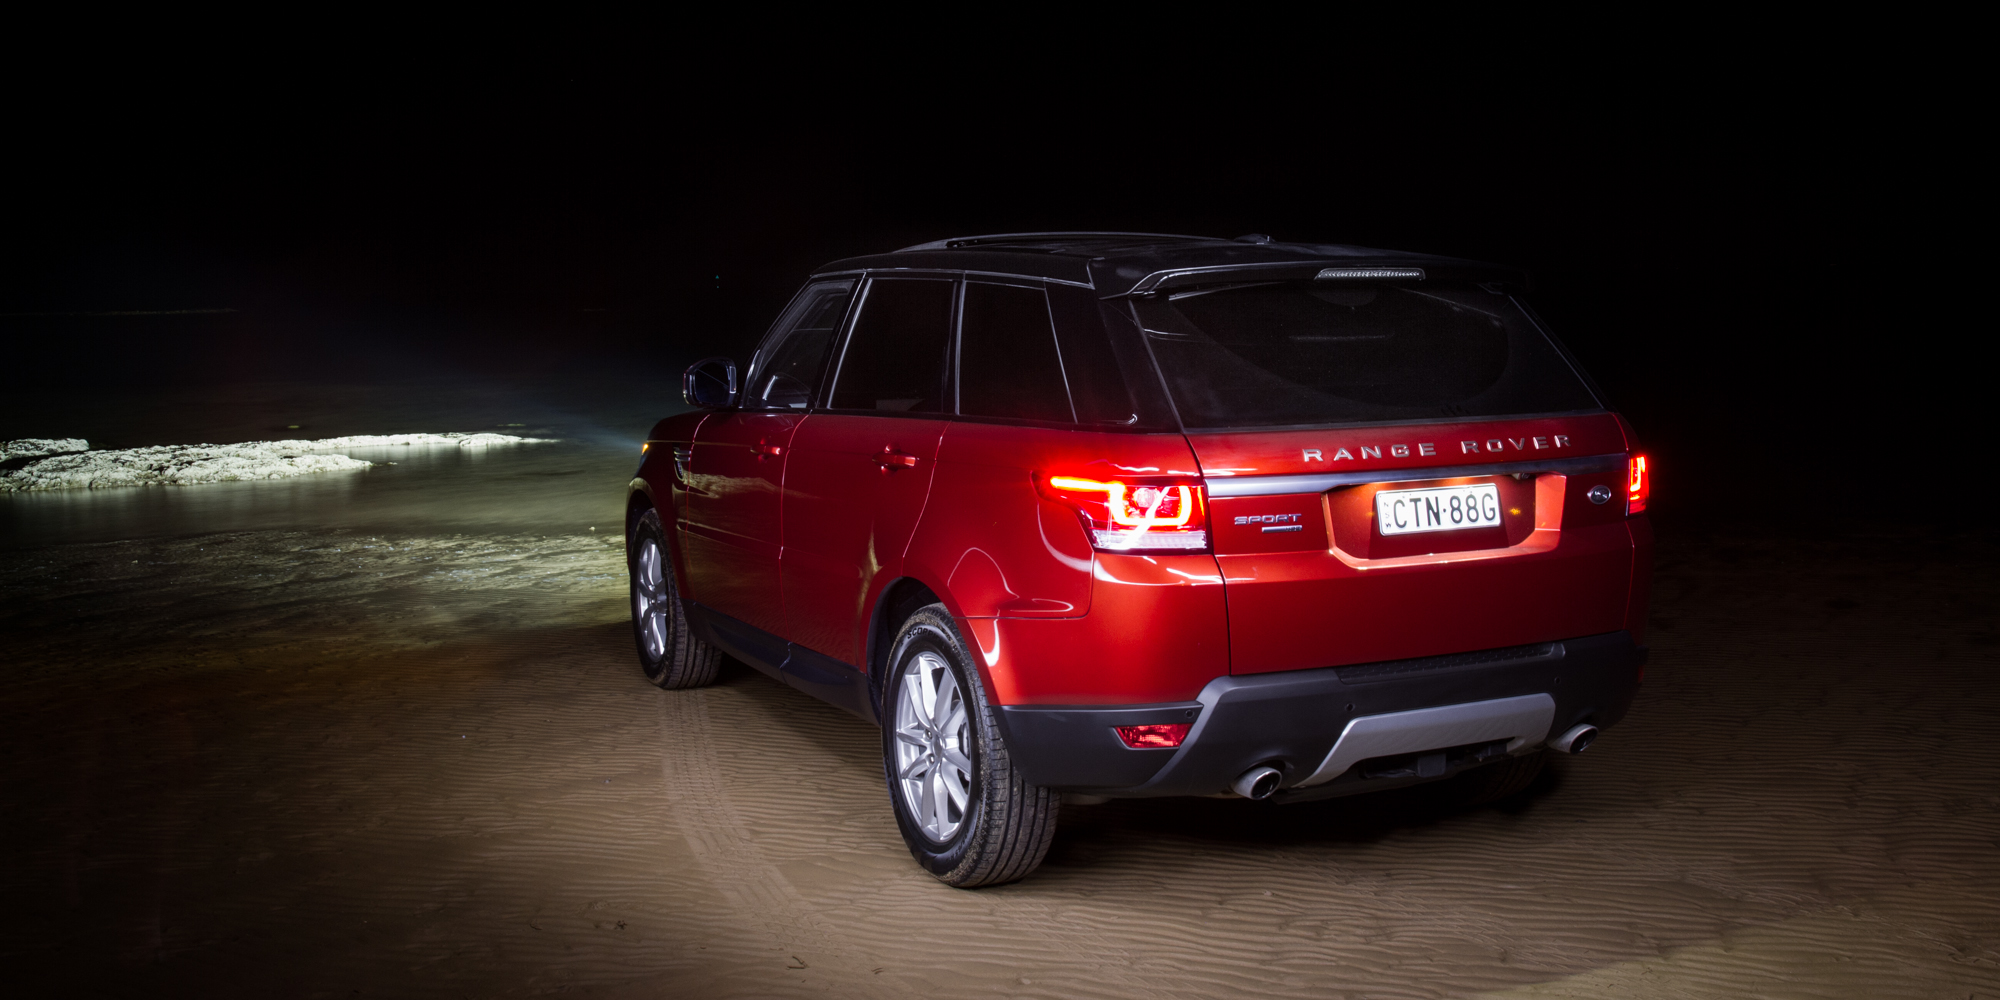 2015 Range Rover Price >> 2015 Range Rover Sport HSE Review - photos | CarAdvice